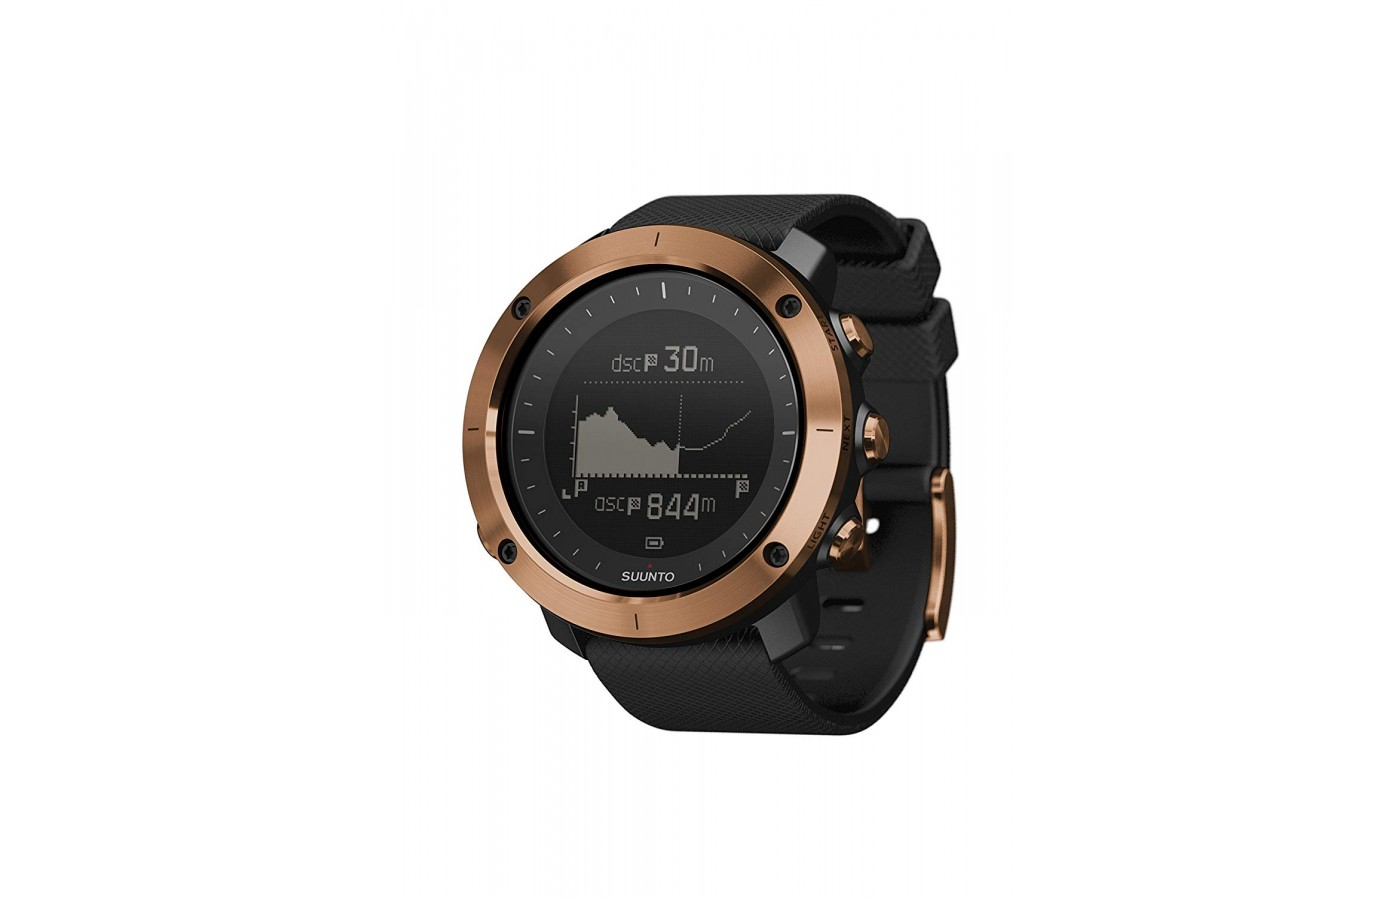 The Suunto Traverse Alpha has unique features for hunting/angling/fishing